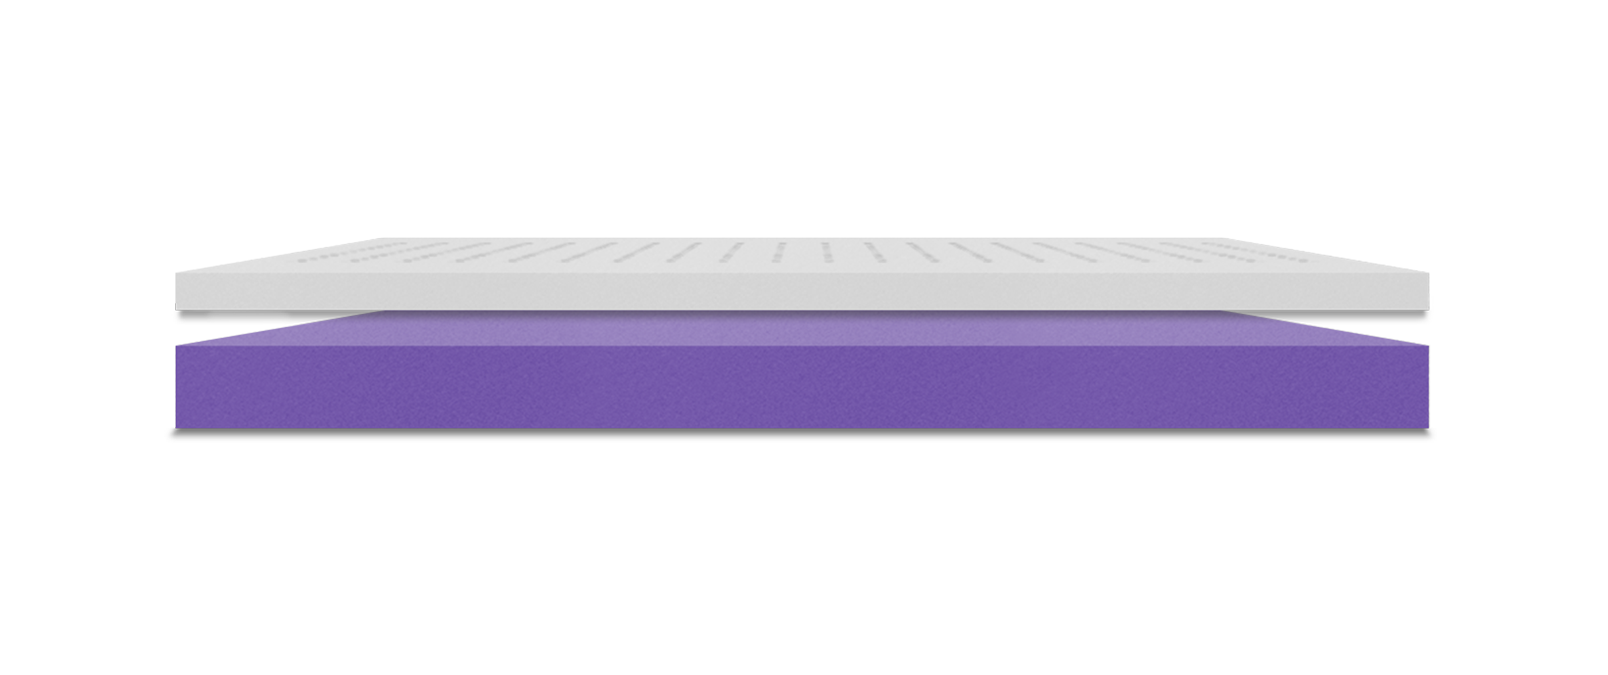 The Polysleep Origin Mattress inside view of the two layers, the firm top layer and the supportive foam Base